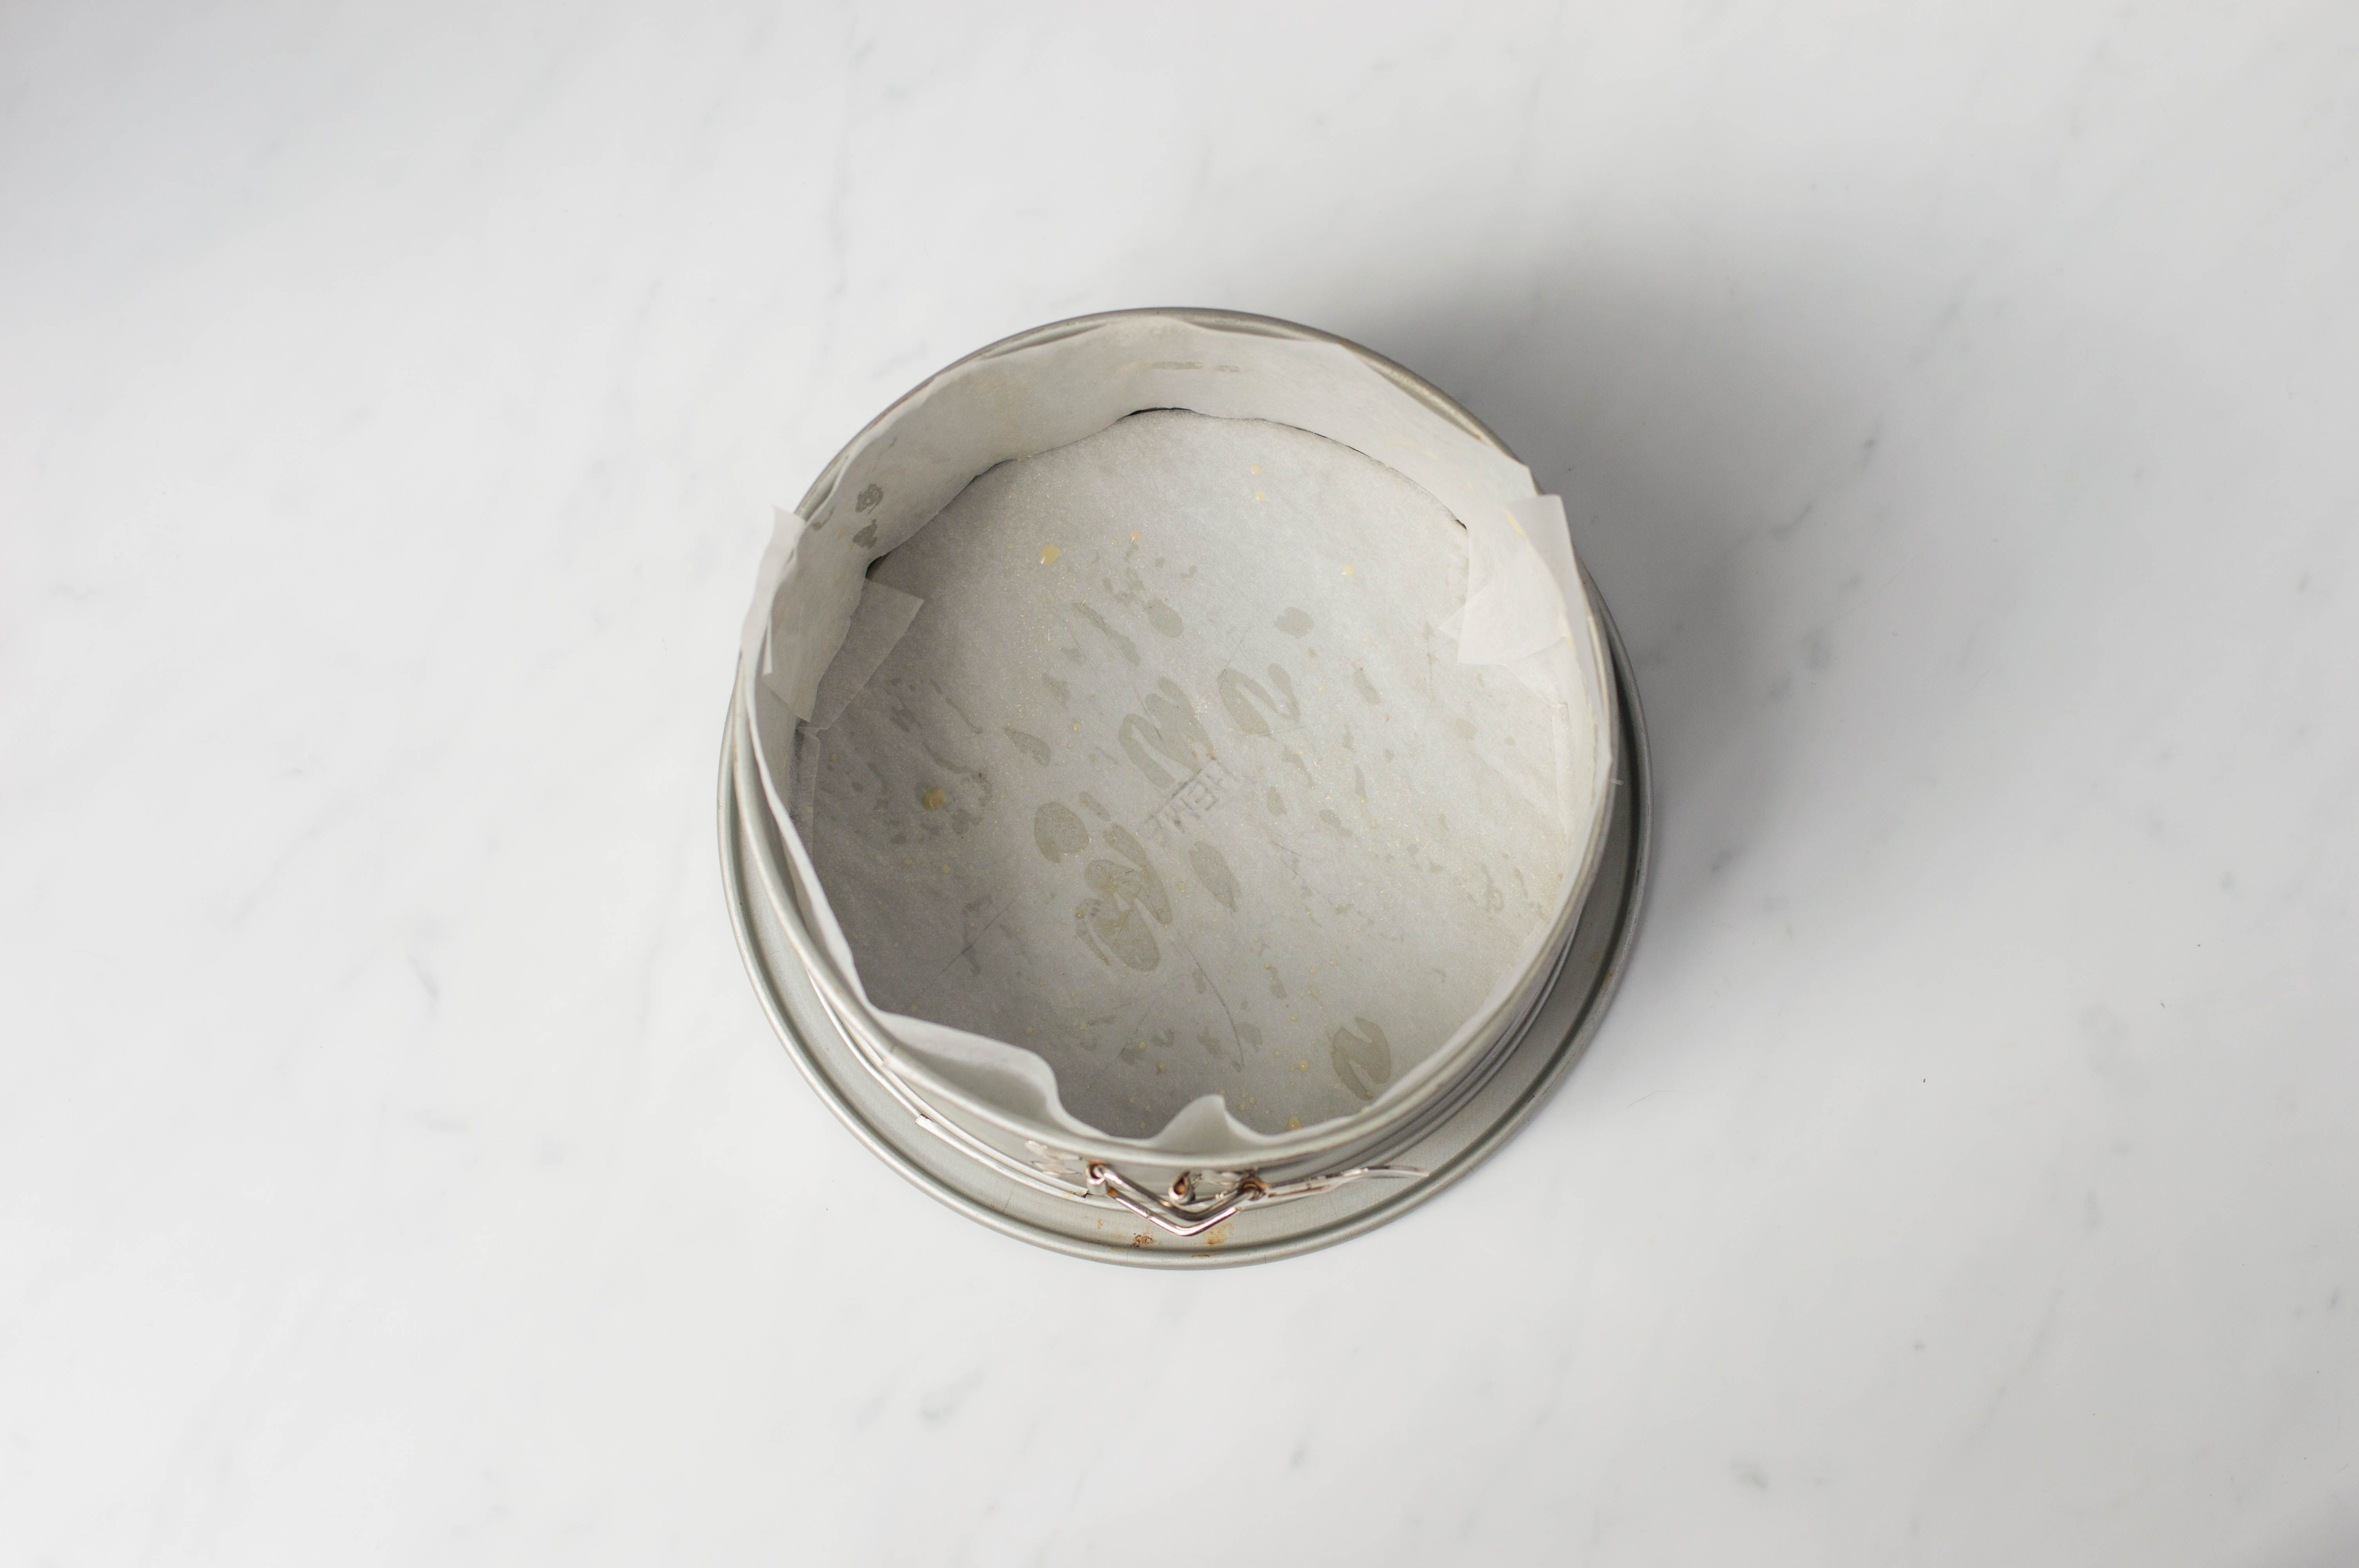 8-inch cake tin lined with greaseproof paper/baking parchment